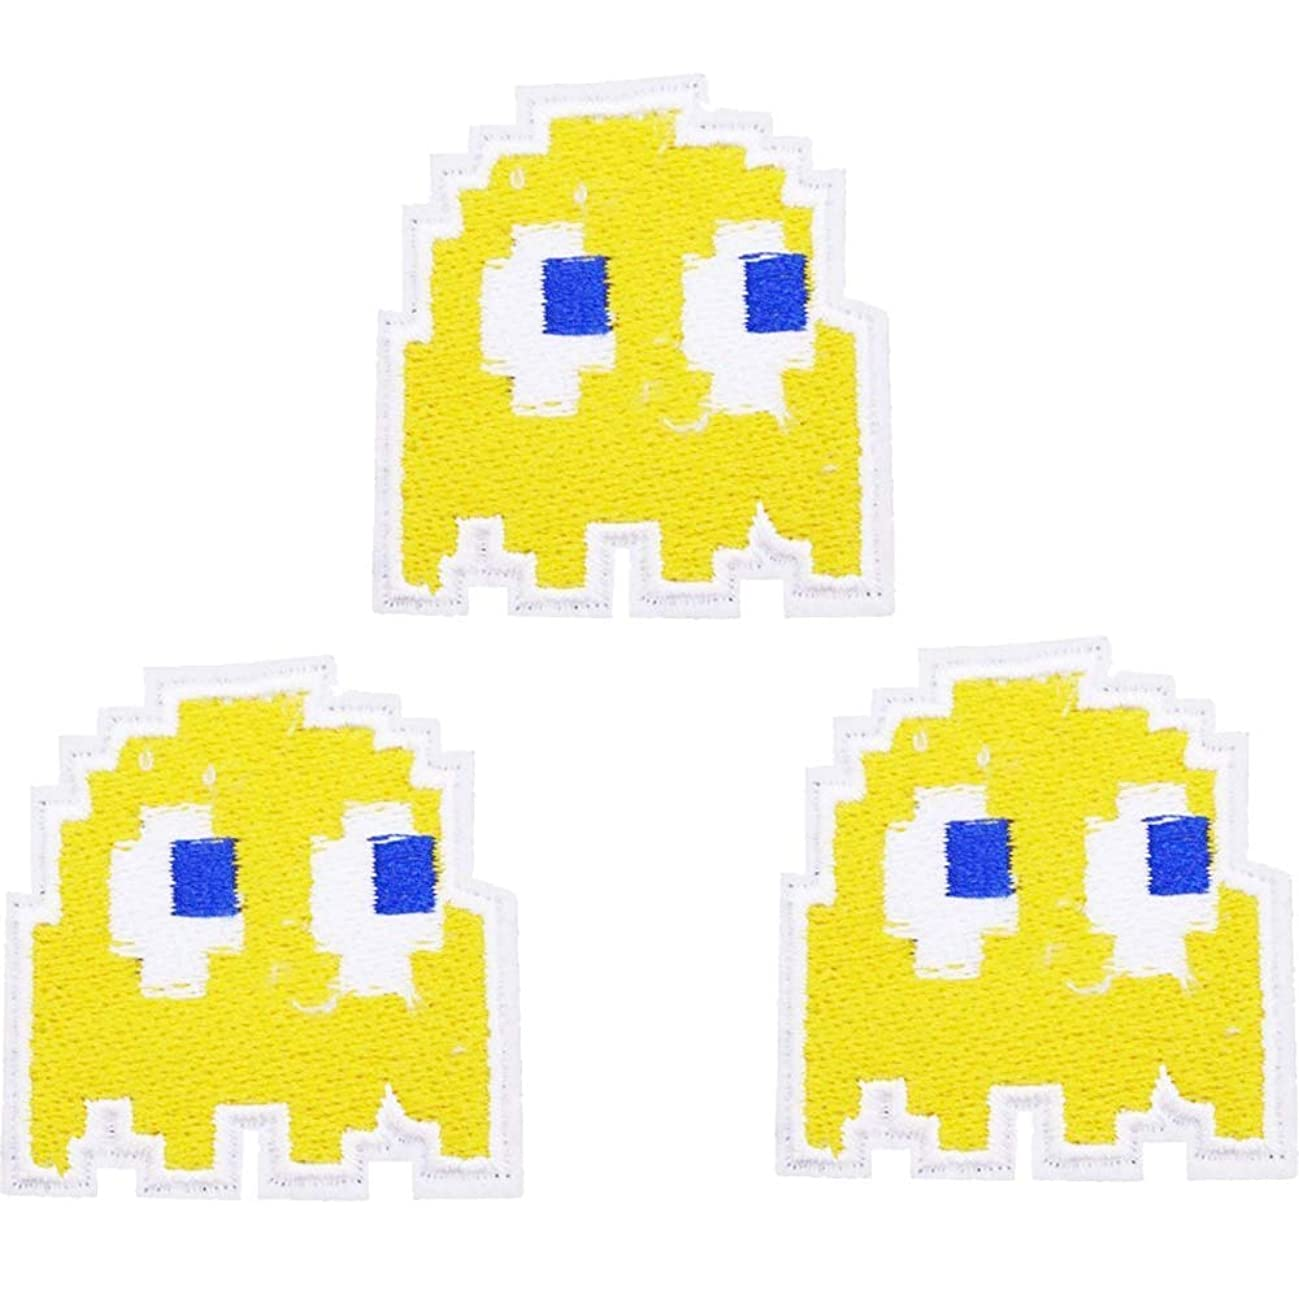 U-Sky Sew or Iron on Patches for Kids Clothing - Yellow Pac Man Patch for Jeans, Jackets, Backpacks, Hats, Caps - Pack of 3pcs - Size: 1.8x1.7 inch